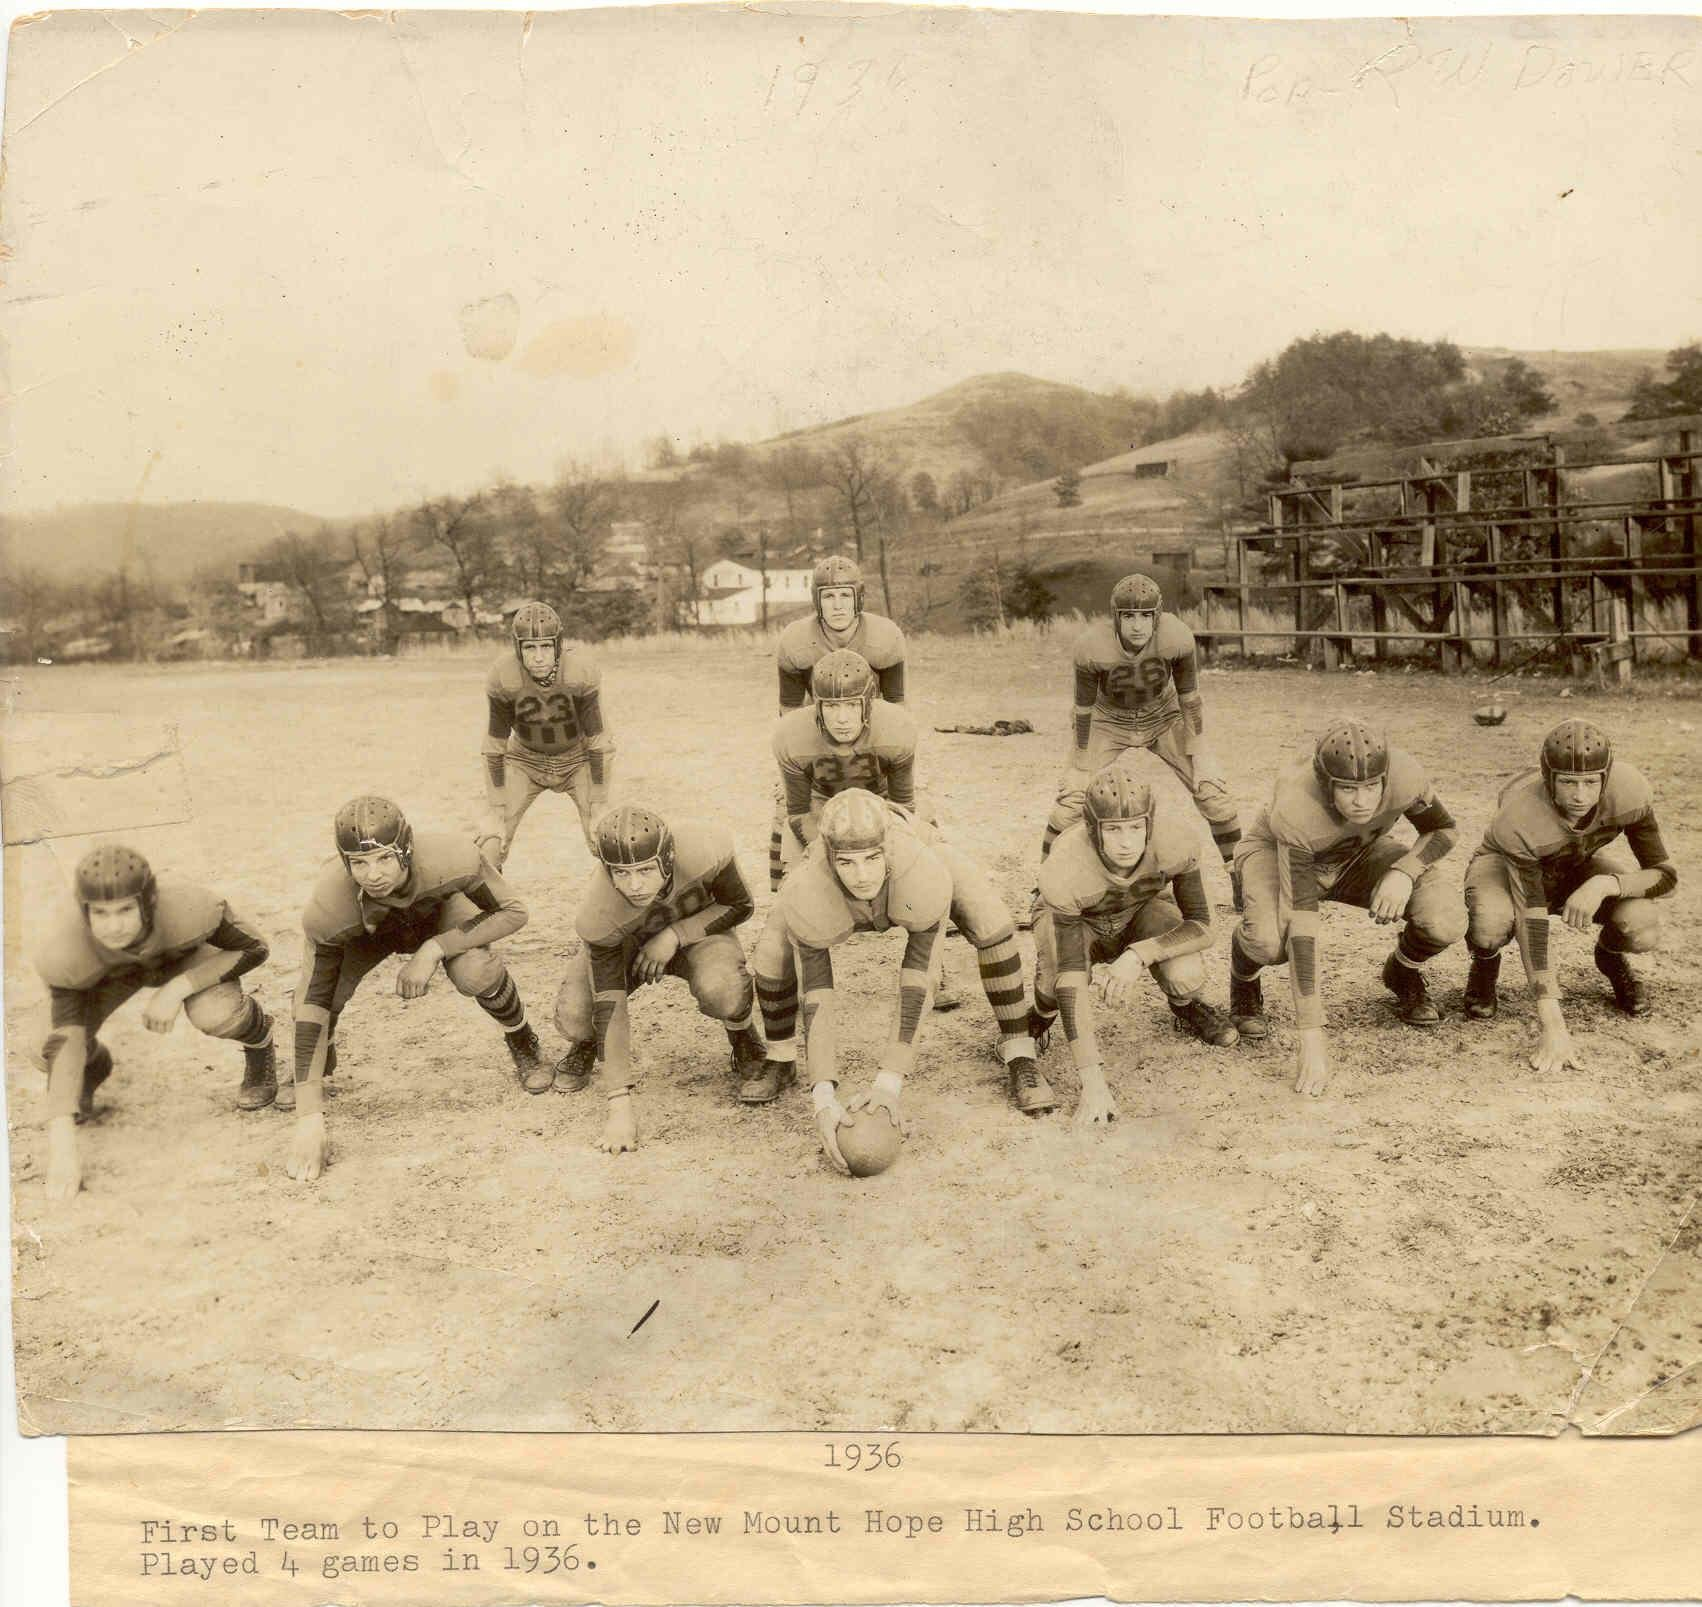 The 1936 Football Team was the first to play on Mount Hope's new field.